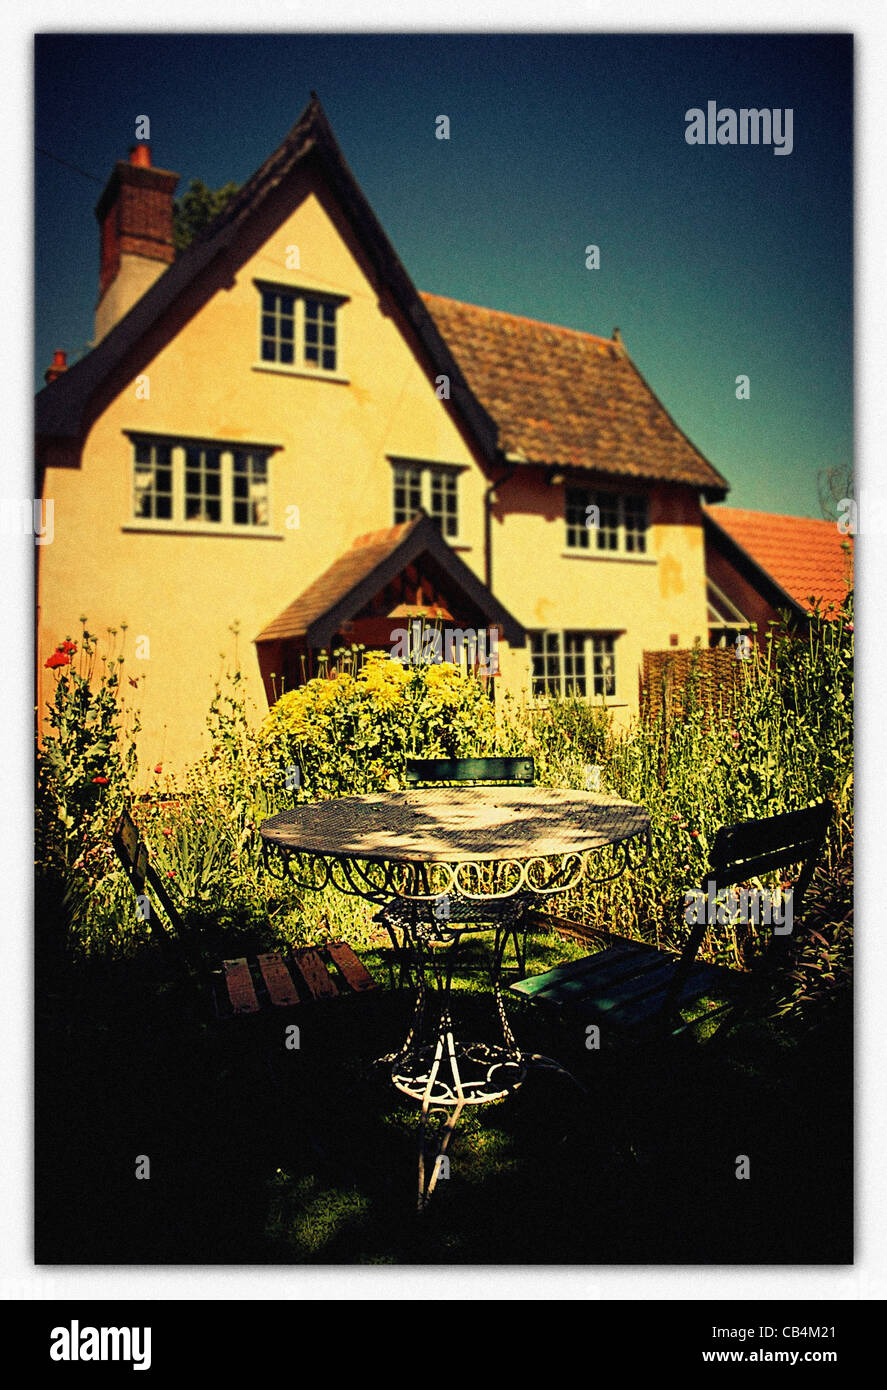 Old period house in Suffolk England - Stock Image